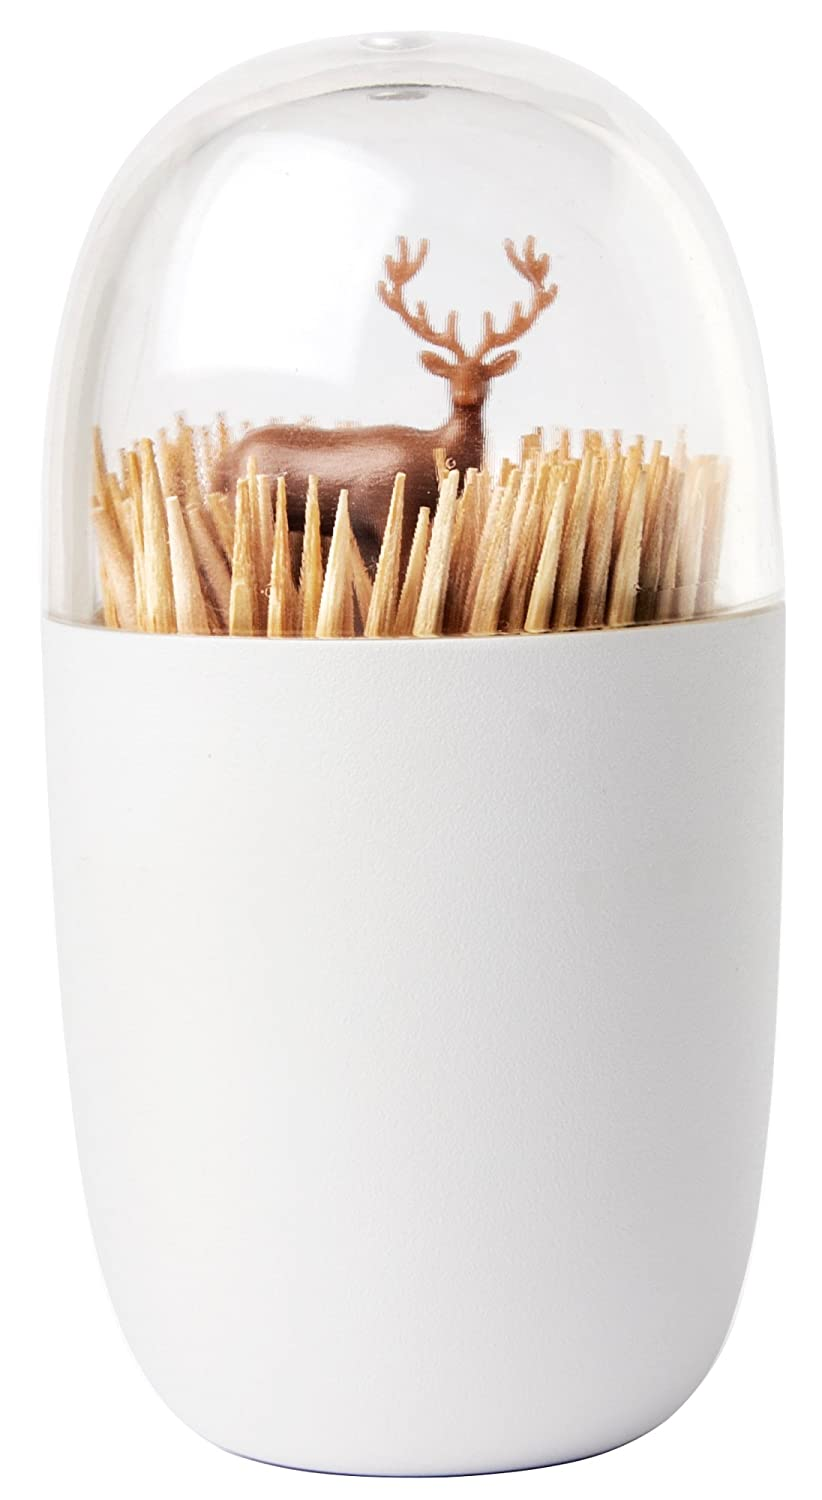 Deer Meadow Toothpick Holder by Qualy Design. Brown Color. Unique Home Design Decoration. Unusual Gift. by Qualy 521706900